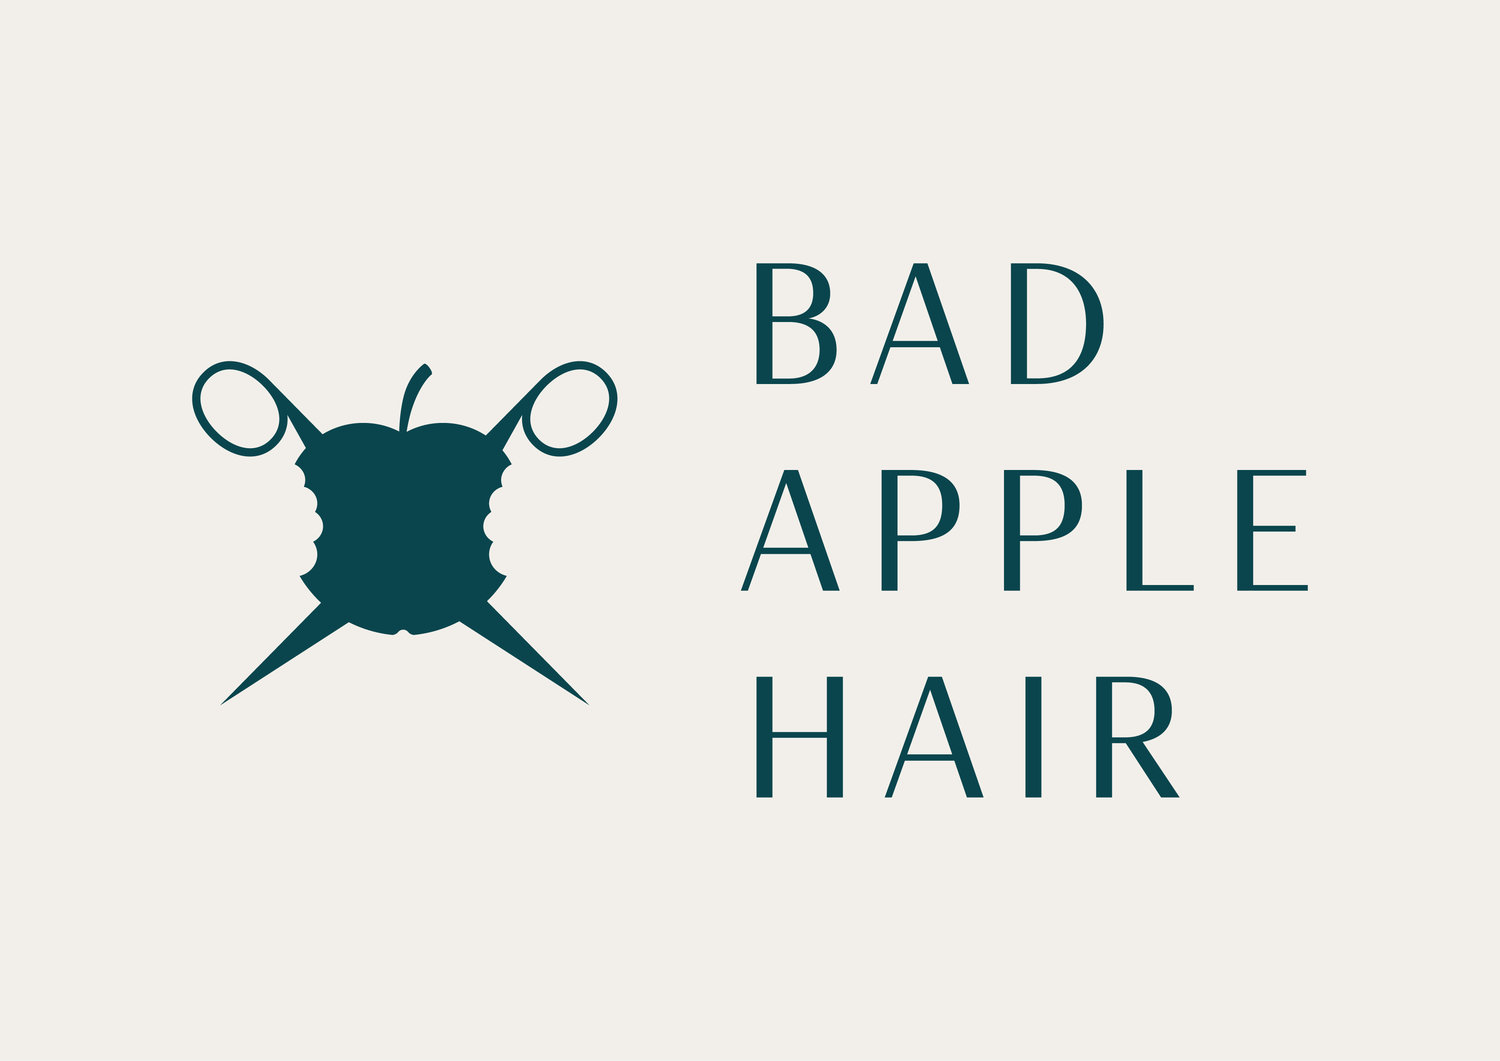 Bad Apple Hair | Award winning hair salons & hairdressers in Birmingham City Centre, Walsall, Solihull, Wolverhampton UK